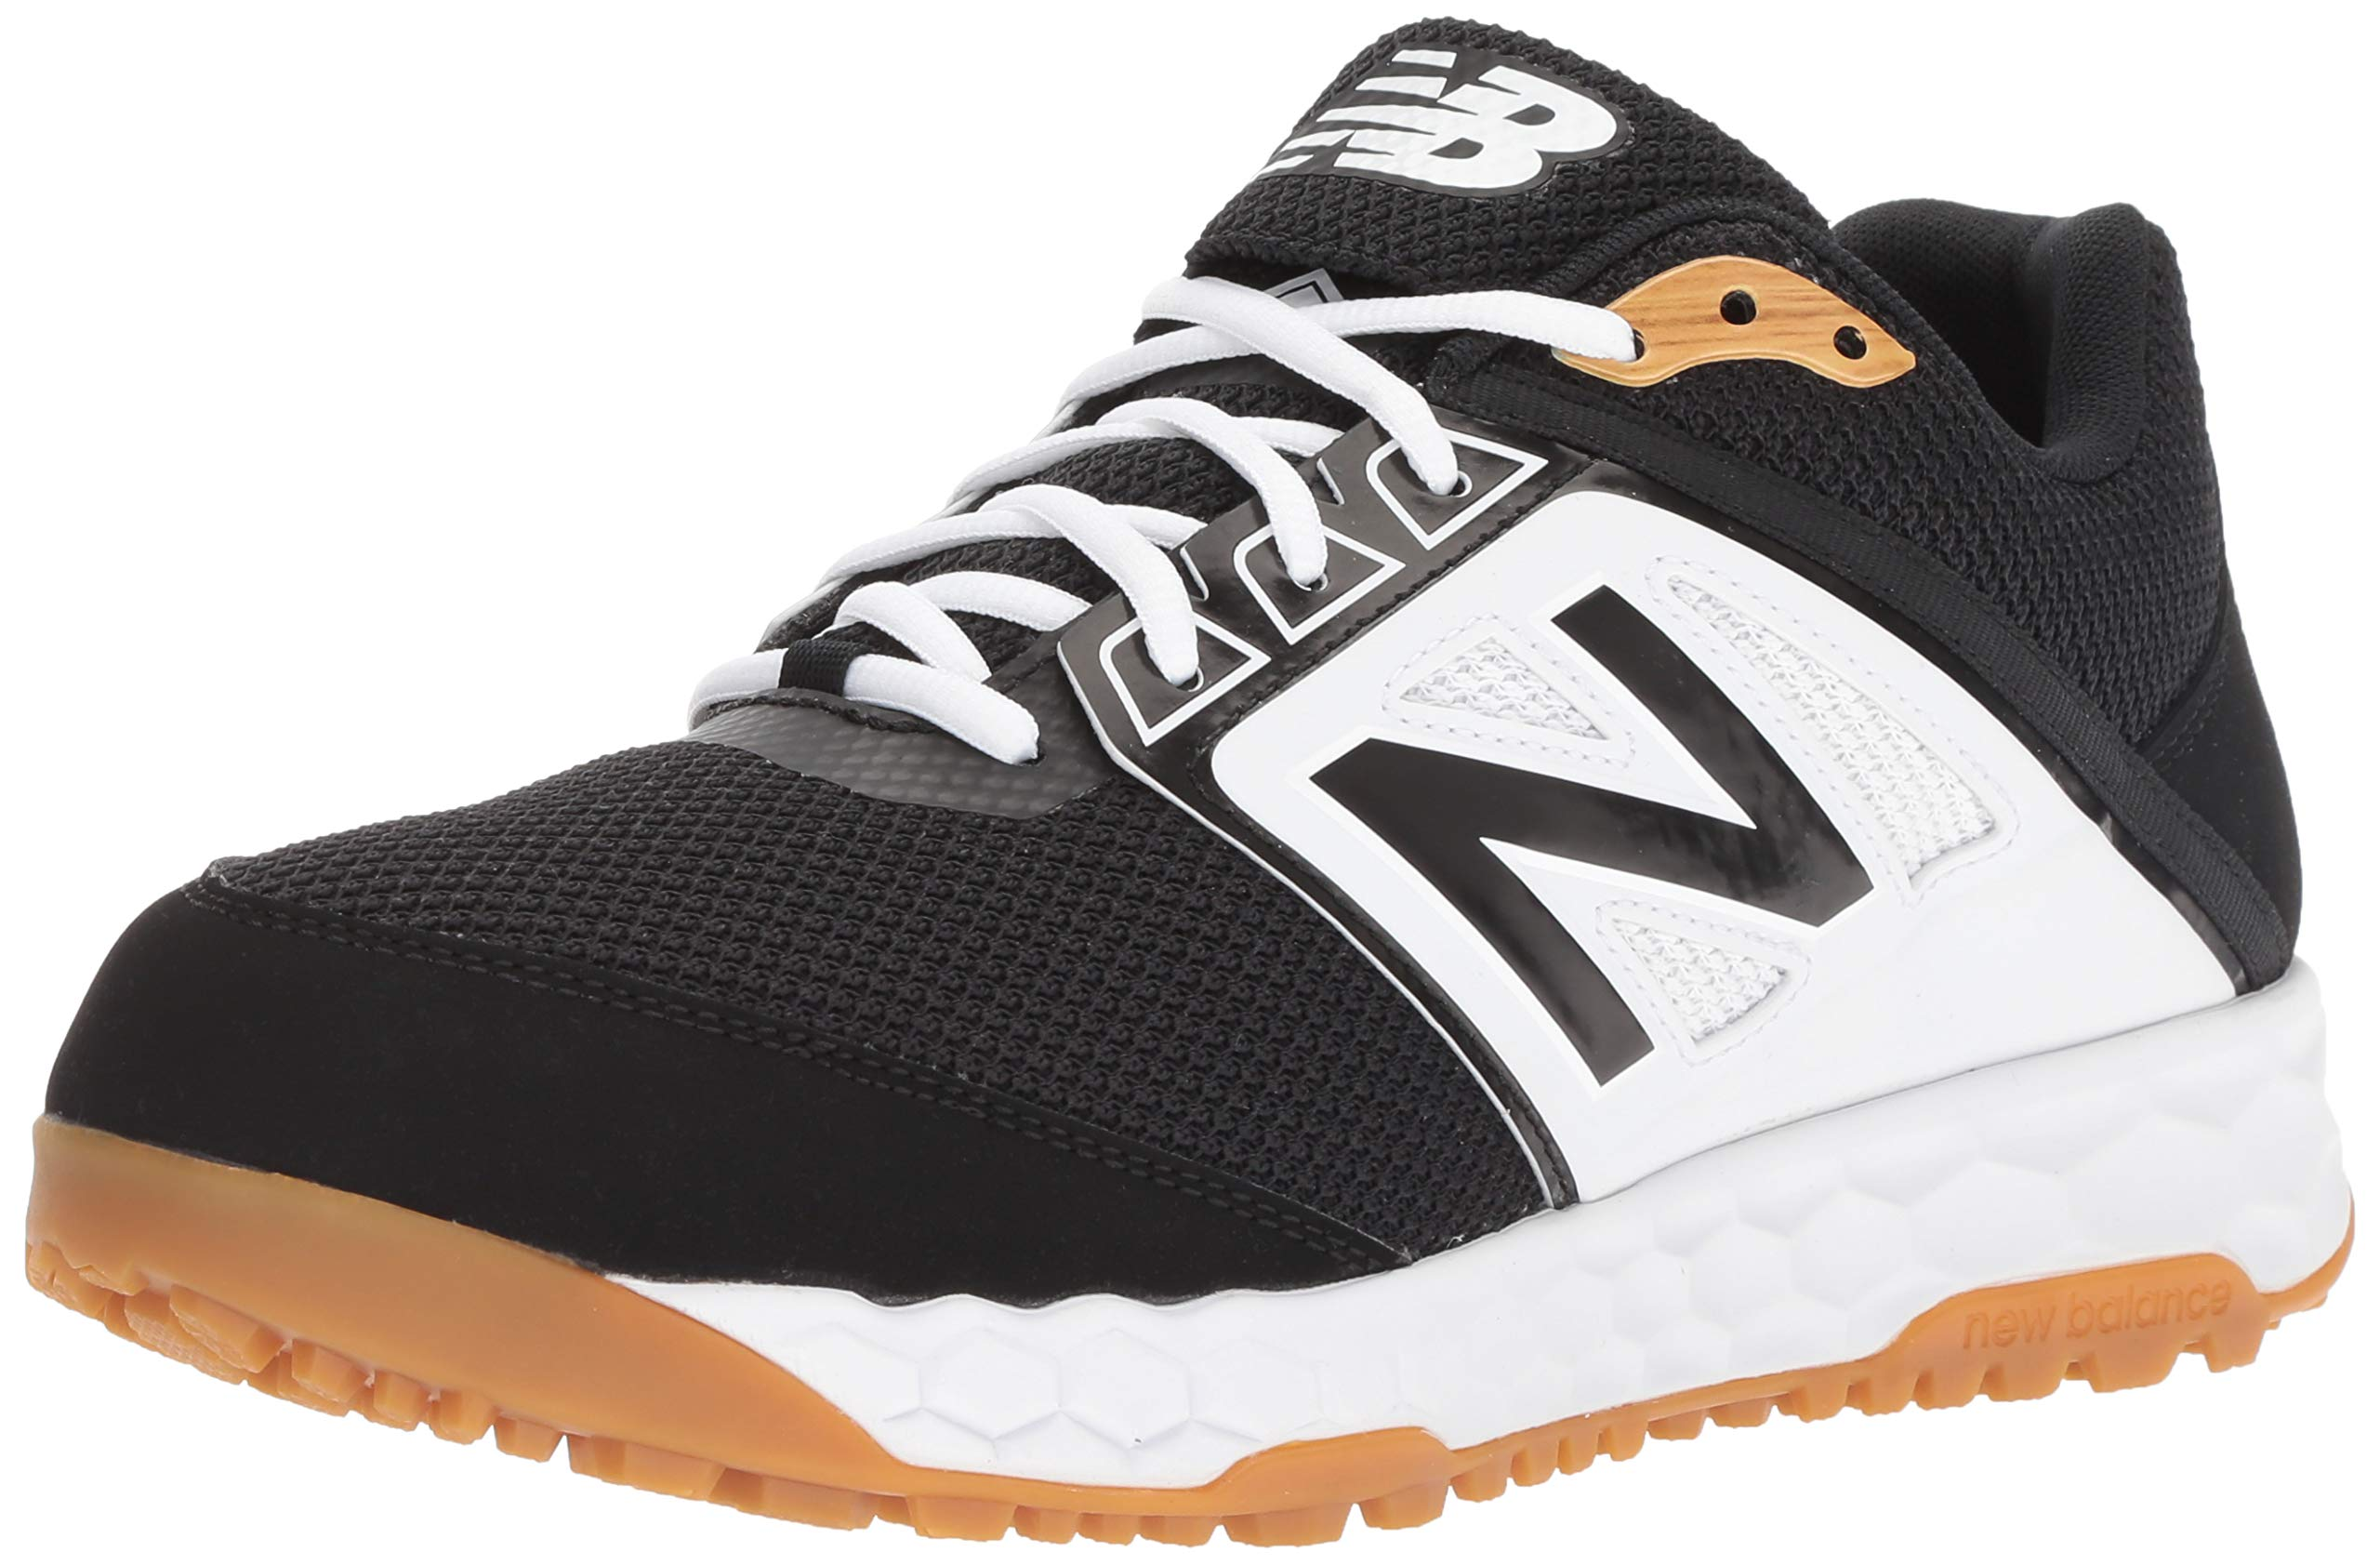 New Balance Men's 3000v4 Turf Baseball Shoe, Black/White, 5 D US